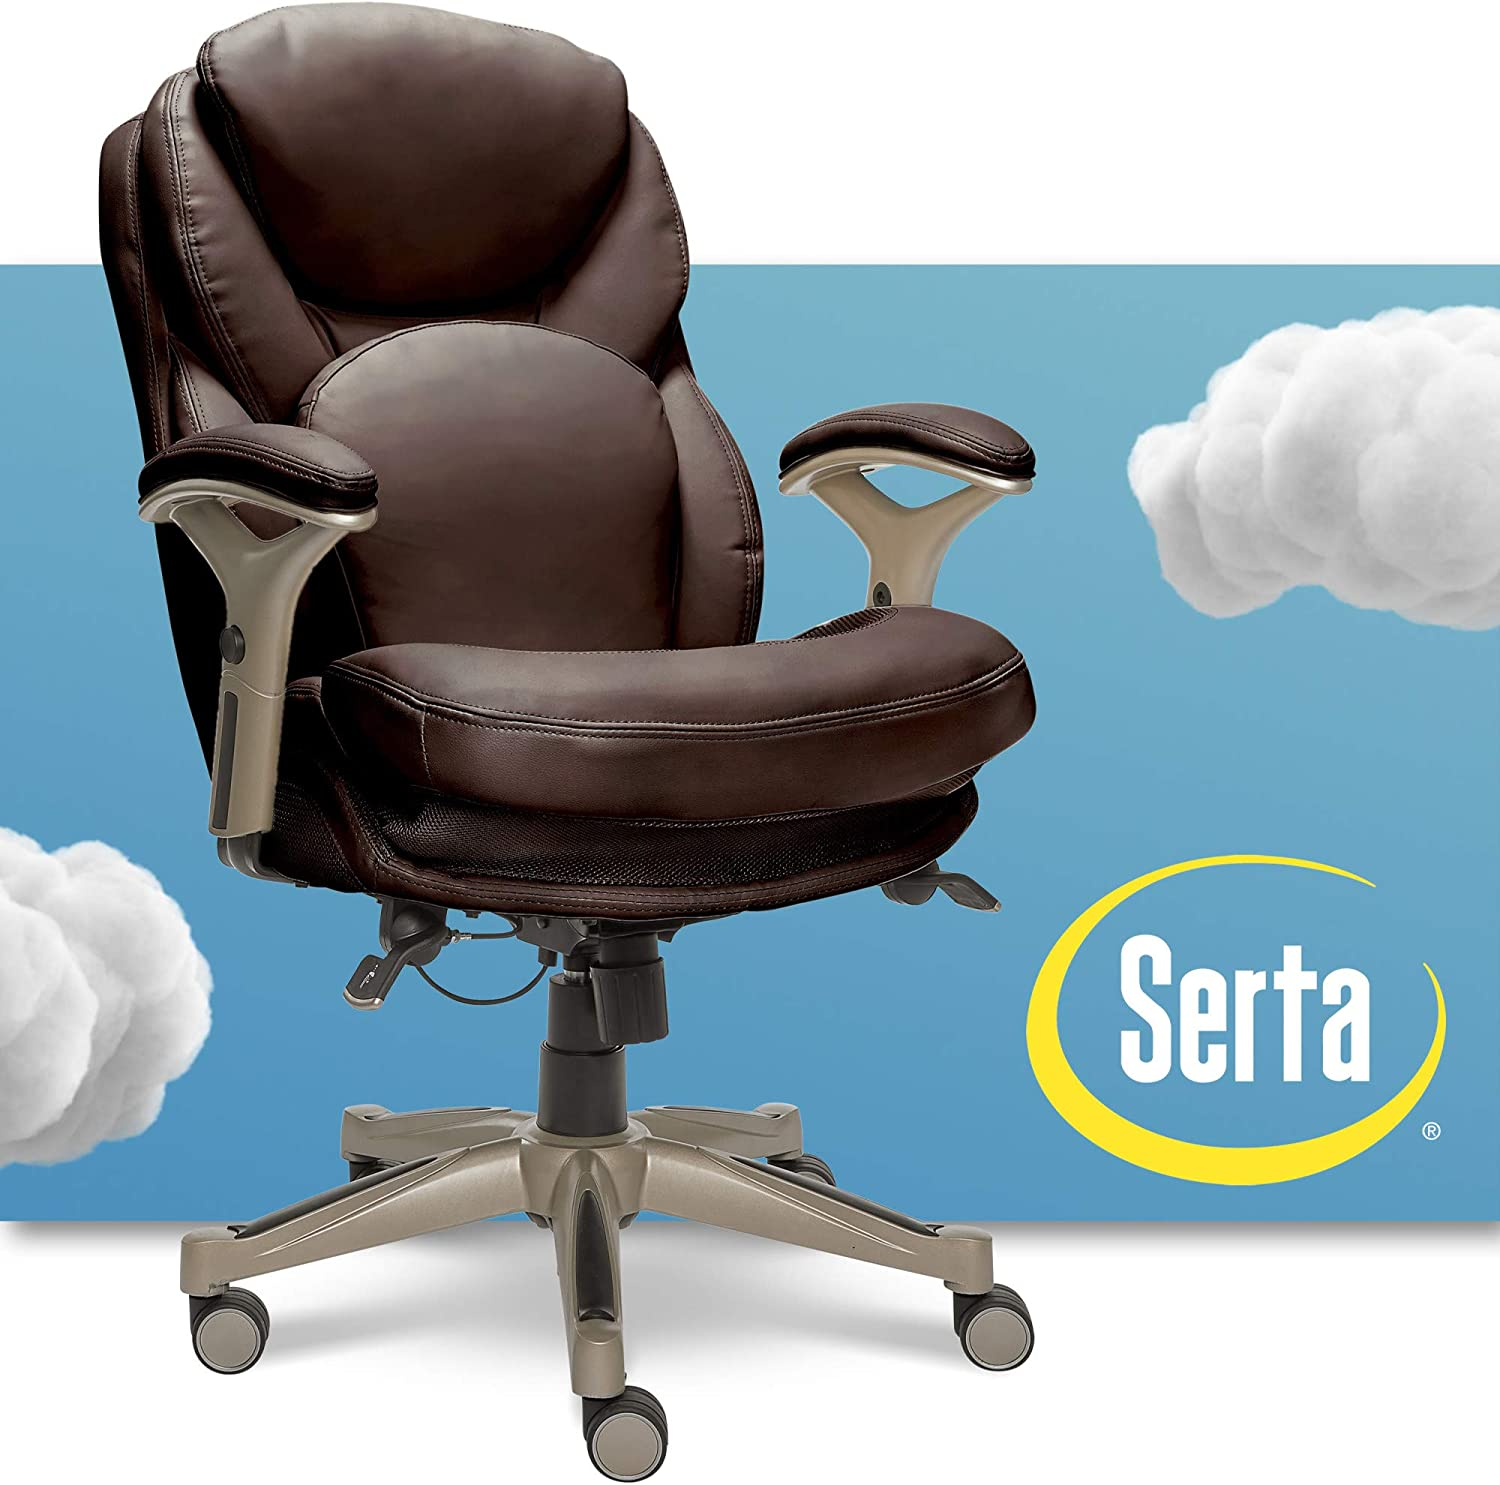 Serta Ergonomic Executive Office Chair Motion Technology Adjustable Mid  Back Design with Lumbar Support, Chestnut Bonded Leather